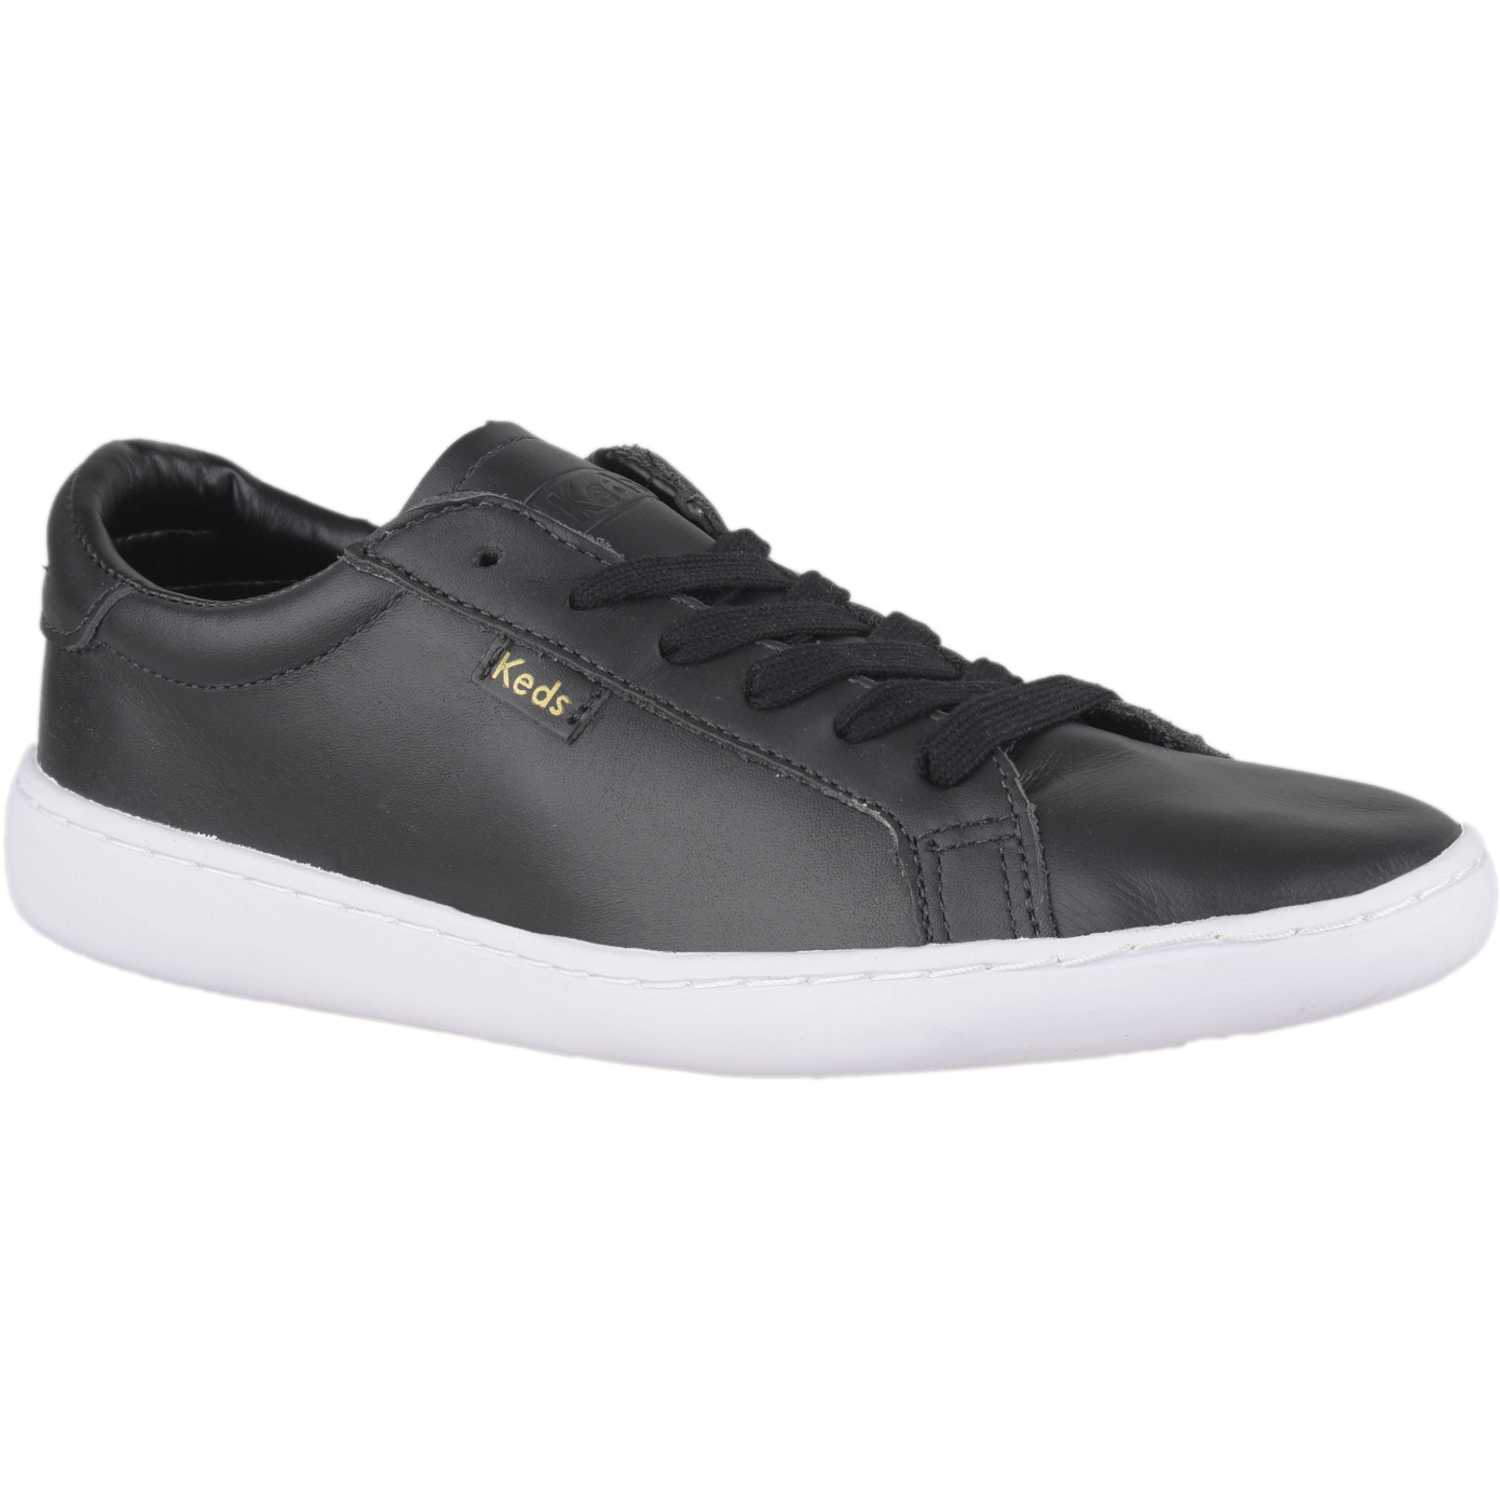 KEDS ace Negro Walking